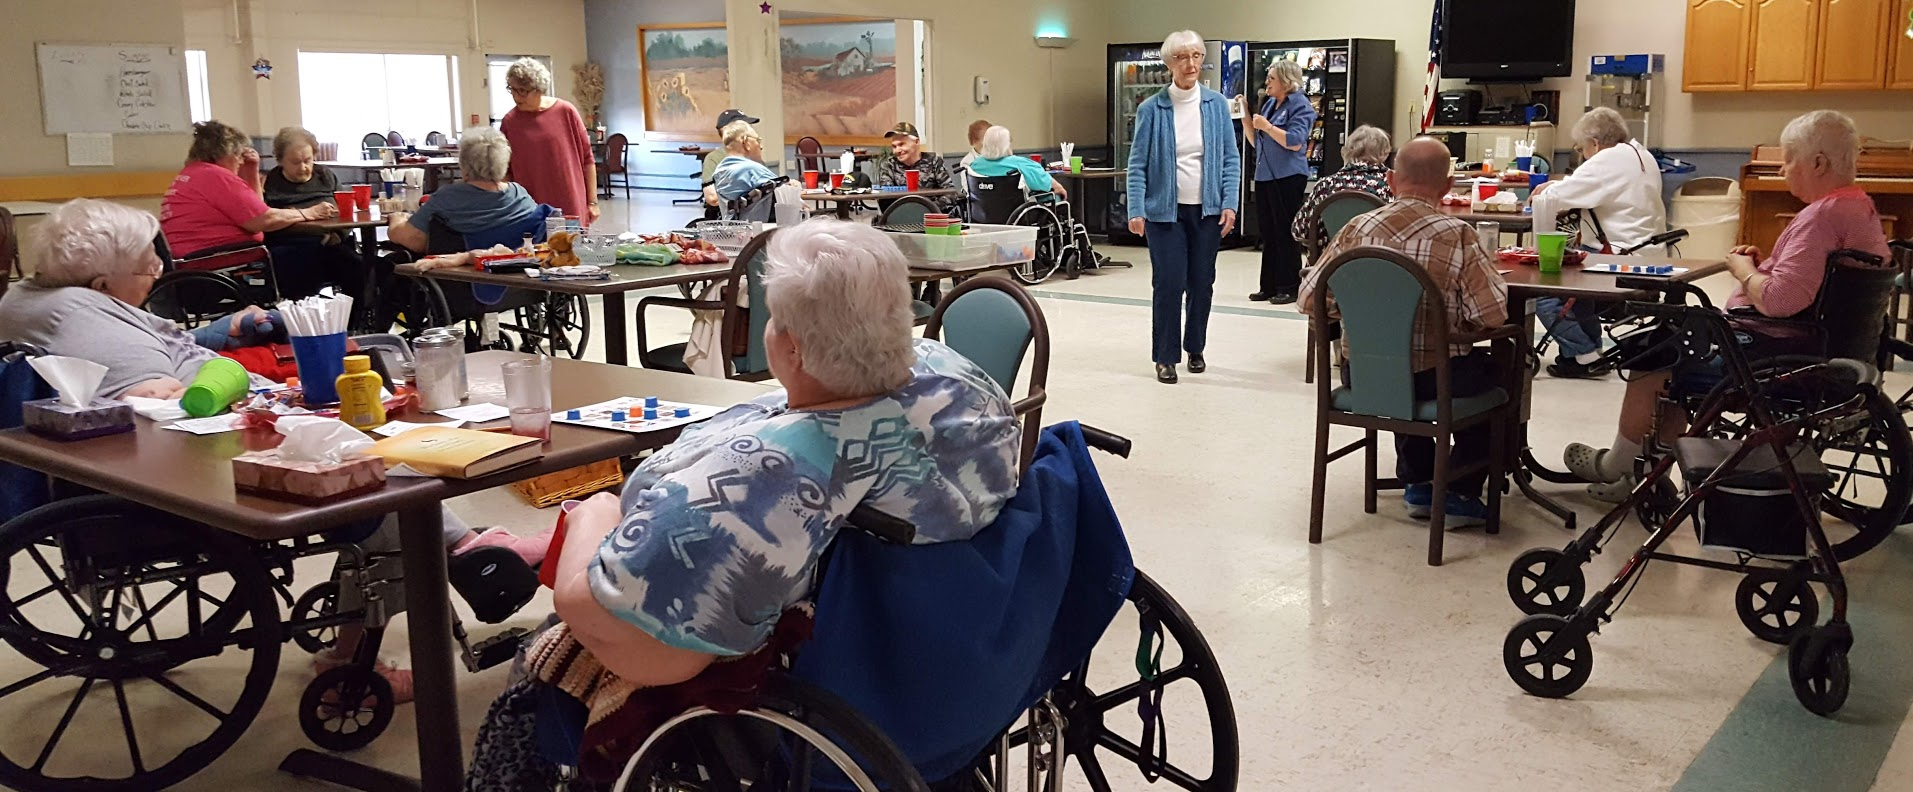 On March 19, 2019 Great Bend Pilots Sally O'Connor & Norma Ward assist residents at Great Bend Health & Rehabilitation with Brain-O Bingo. Janice Walker calls out the picture on the call-card and gives the appropriate safety tip that matches the picture.